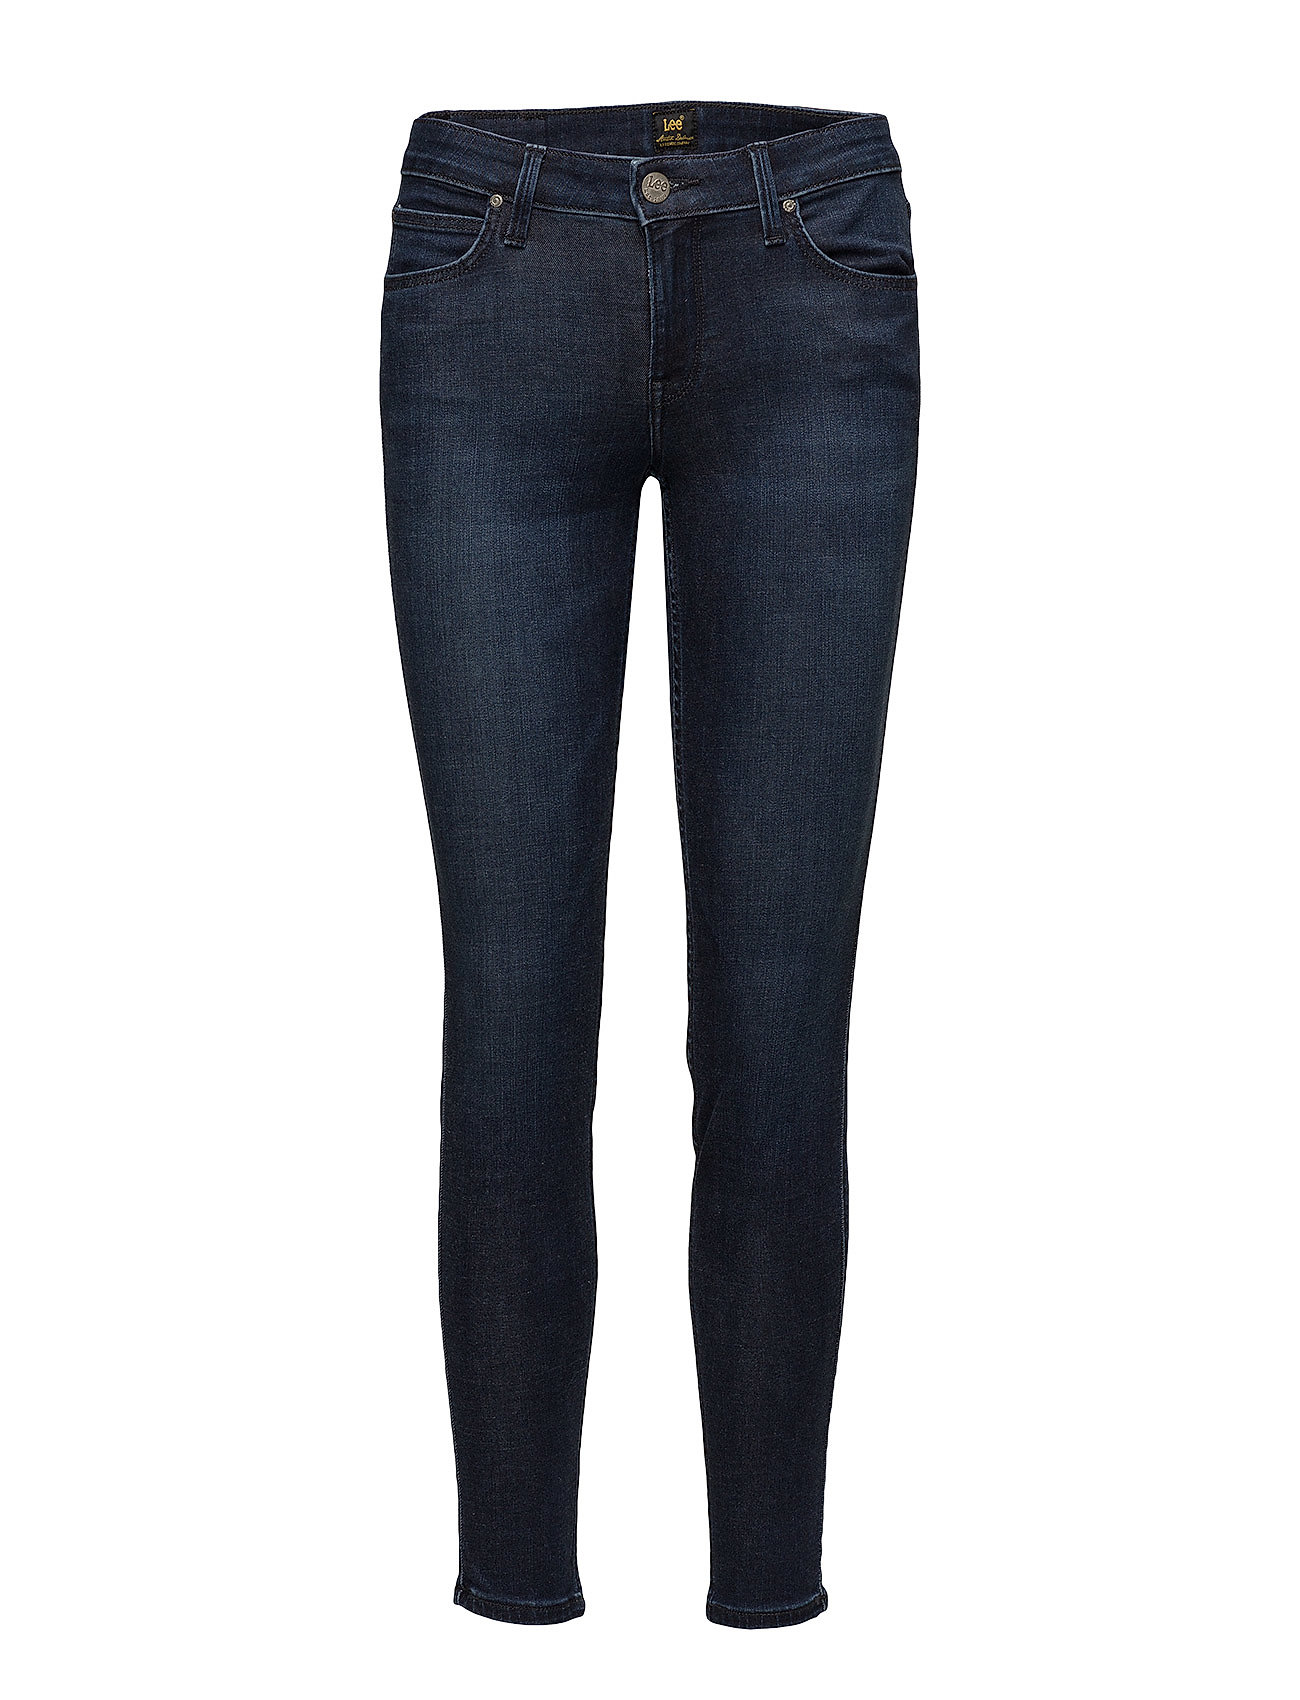 Lee Jeans SCARLETT - POLISHED INDIGO